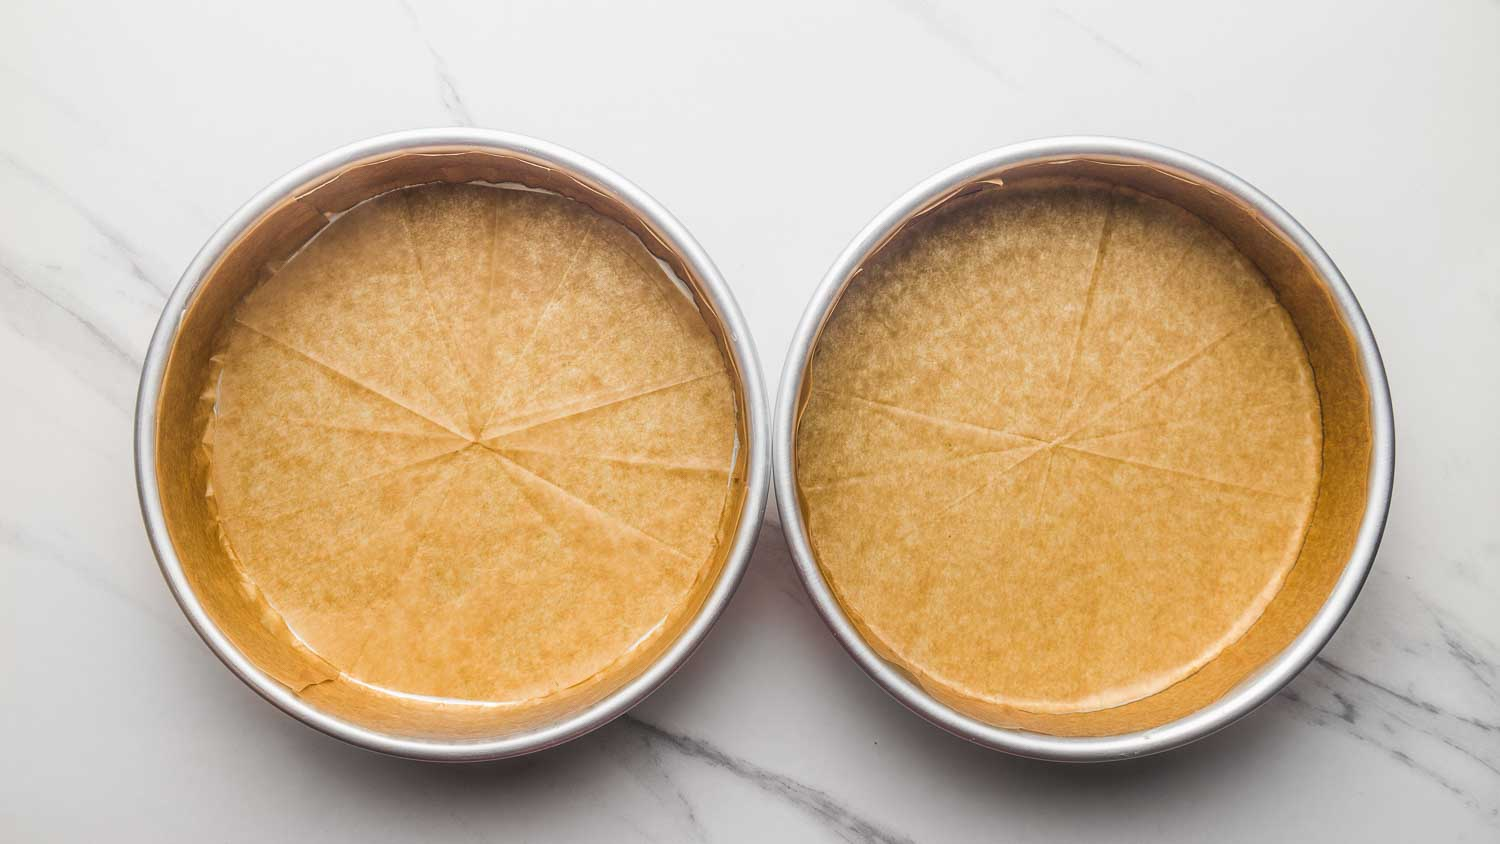 Lining cake pans with parchment paper